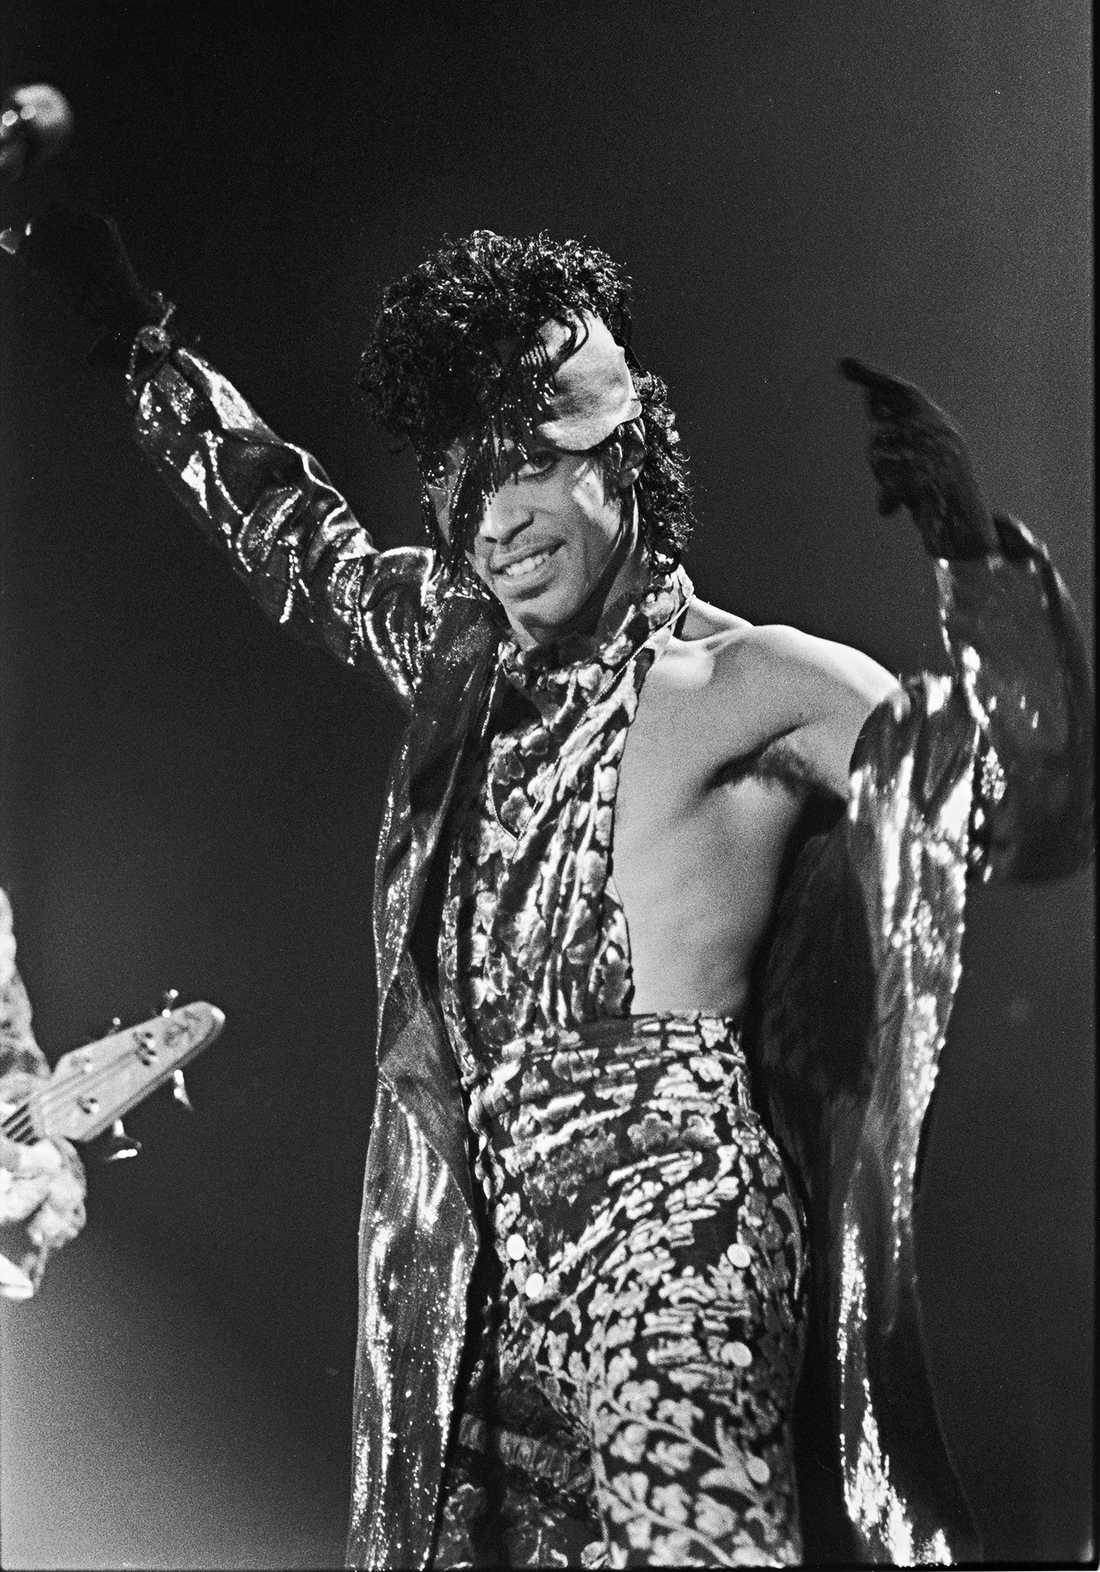 Prince i Minneapolis 1984